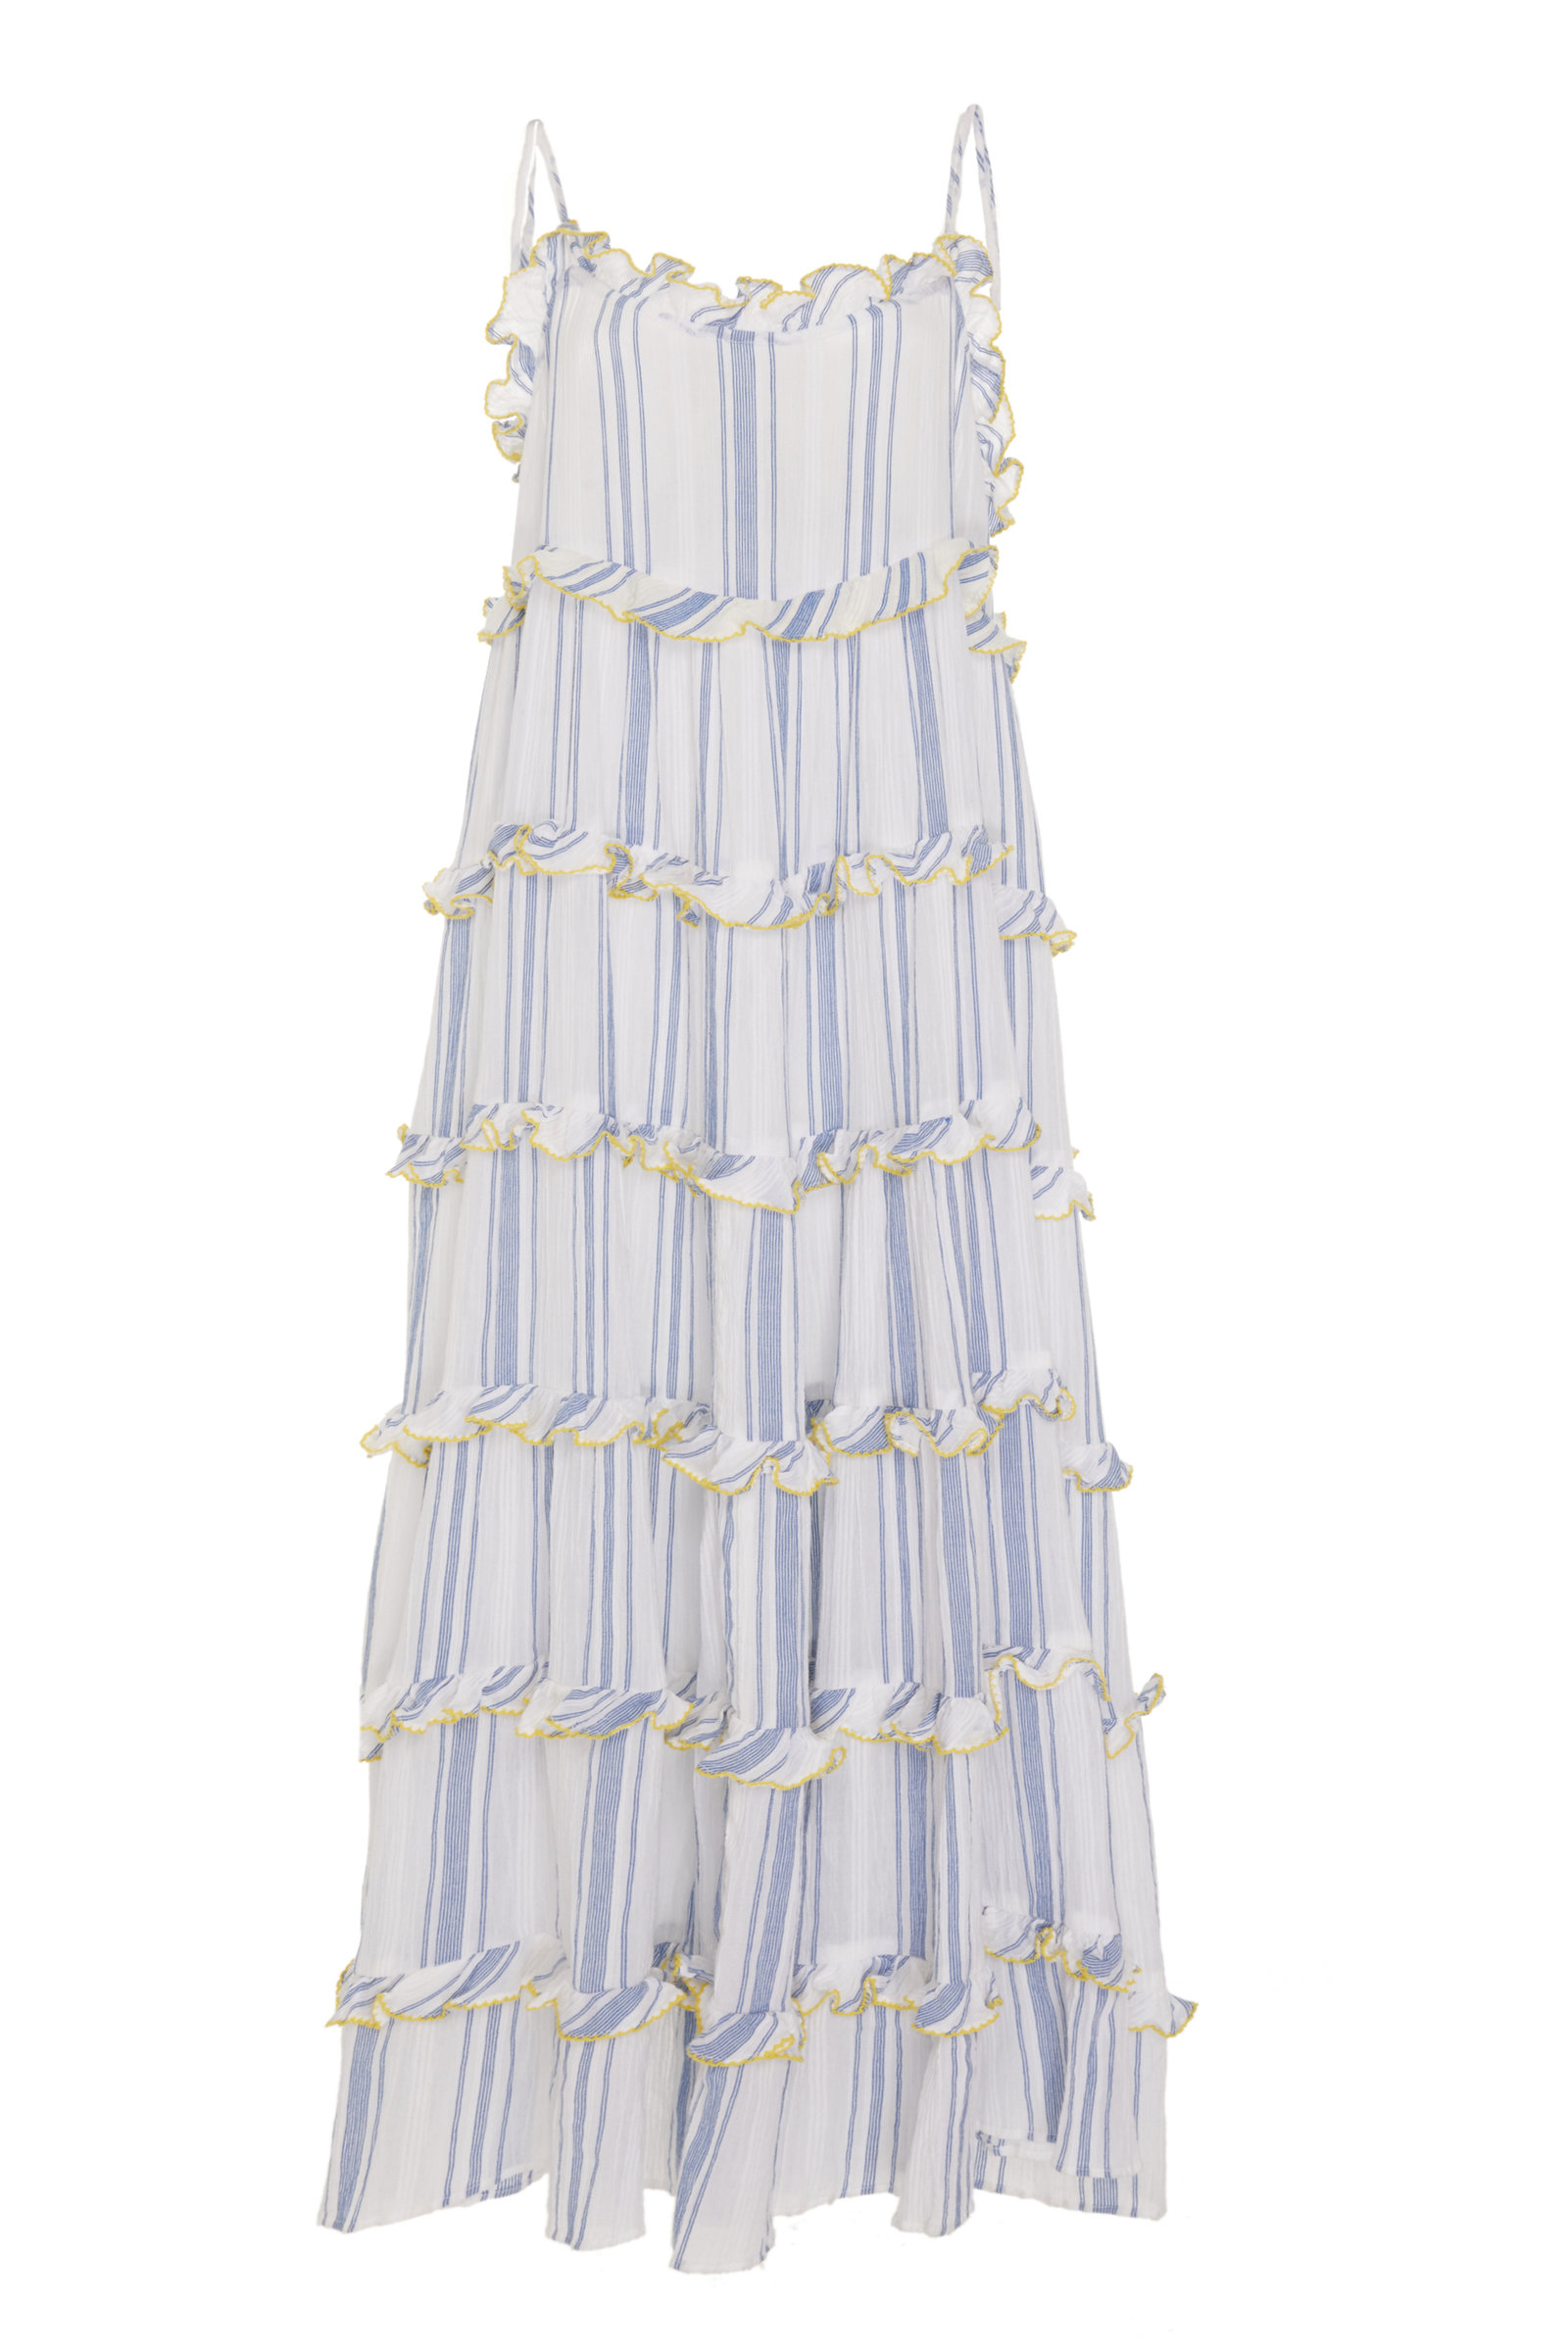 RAE FEATHER M'O EXCLUSIVE COTTON STRIPE FRILL DRESS